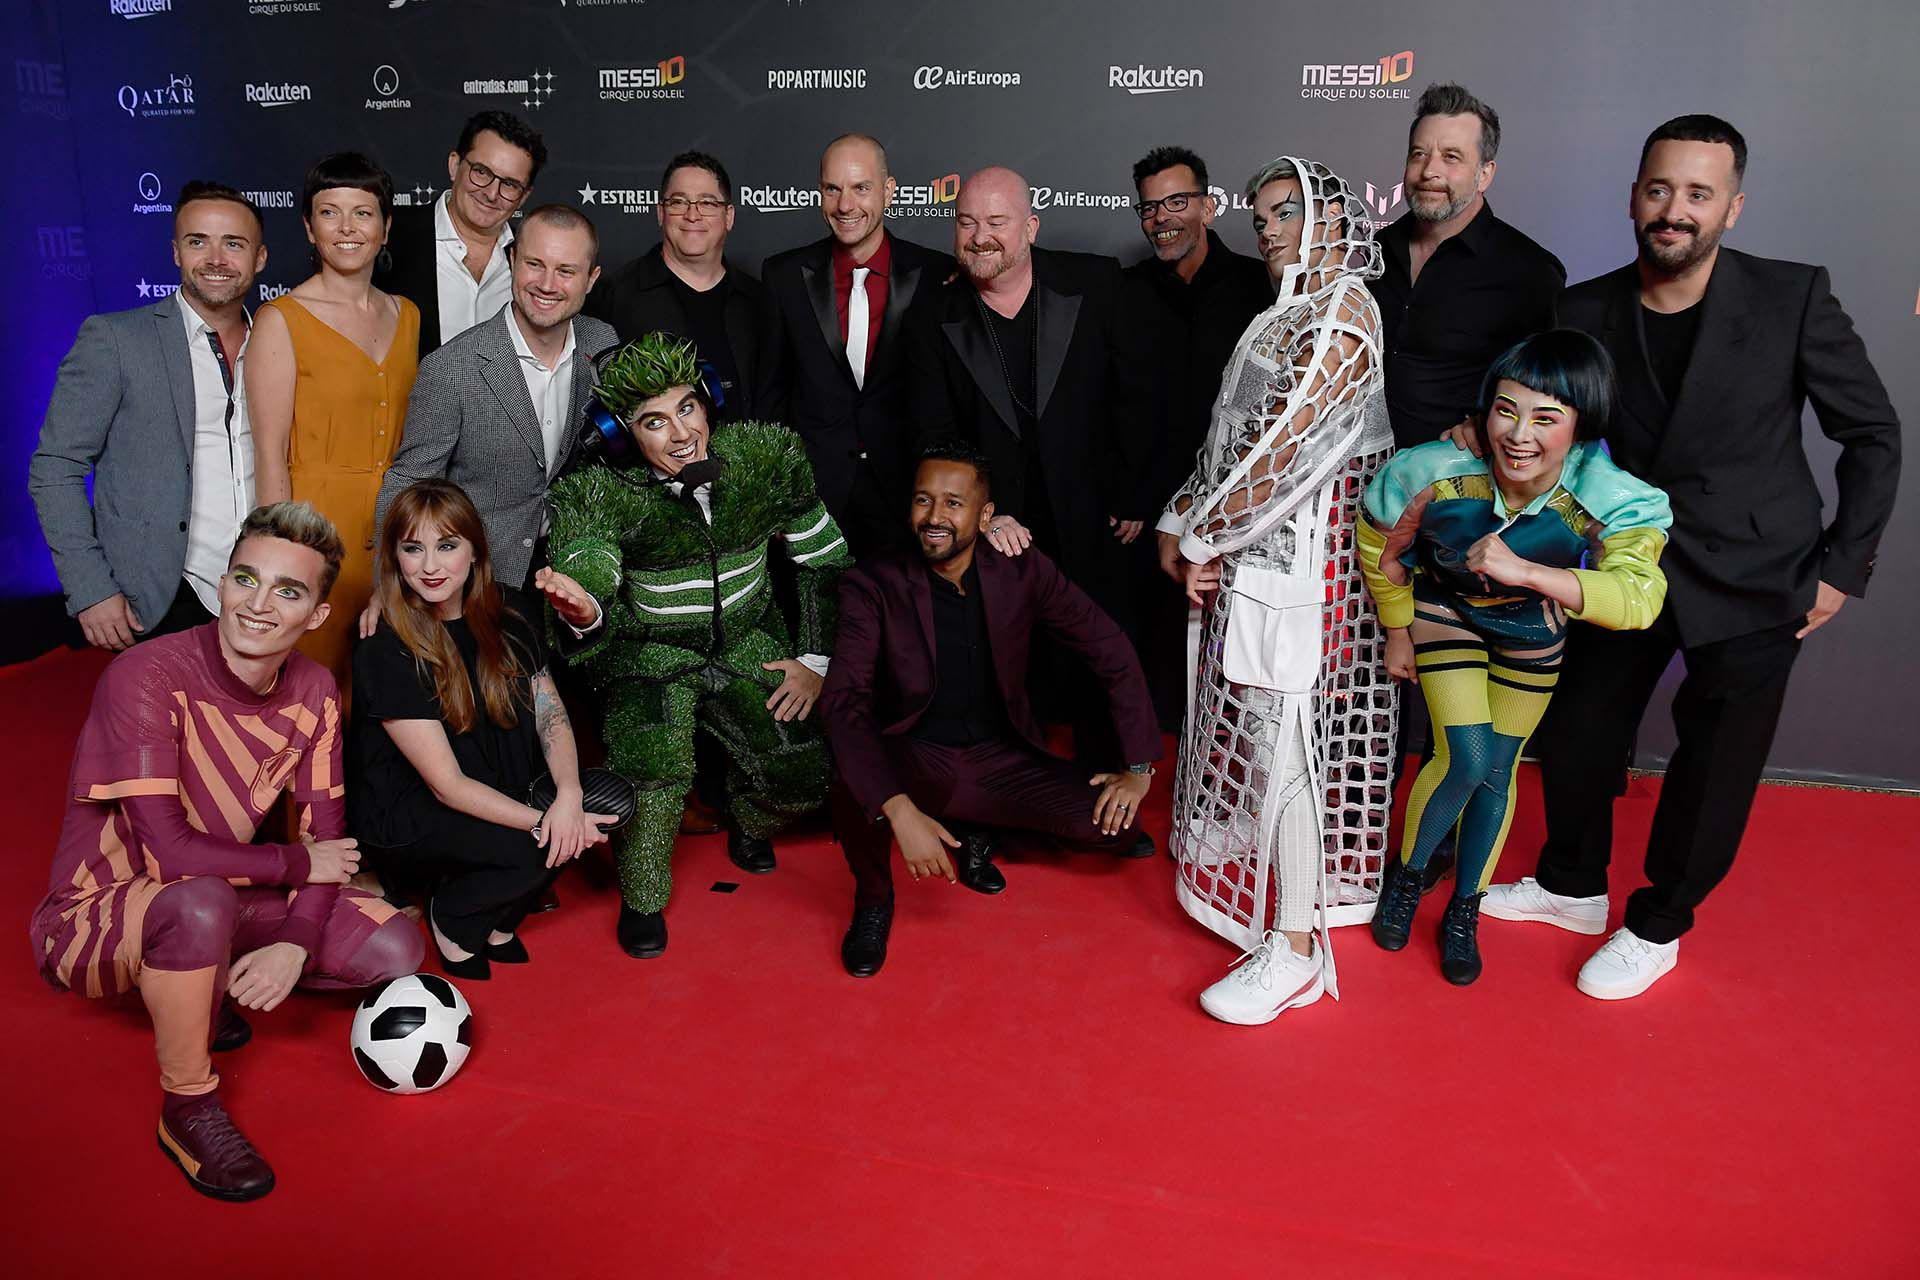 "Director Mukhtar Omar Sharif Mukhtar (C) poses with the creation team on the red carpet during the premiere of Cirque du Soleil's latest show ""Messi 10"" inspired by Argentinian football star Lionel Messi in Barcelona on October 10, 2019. (Photo by Josep LAGO / AFP)"